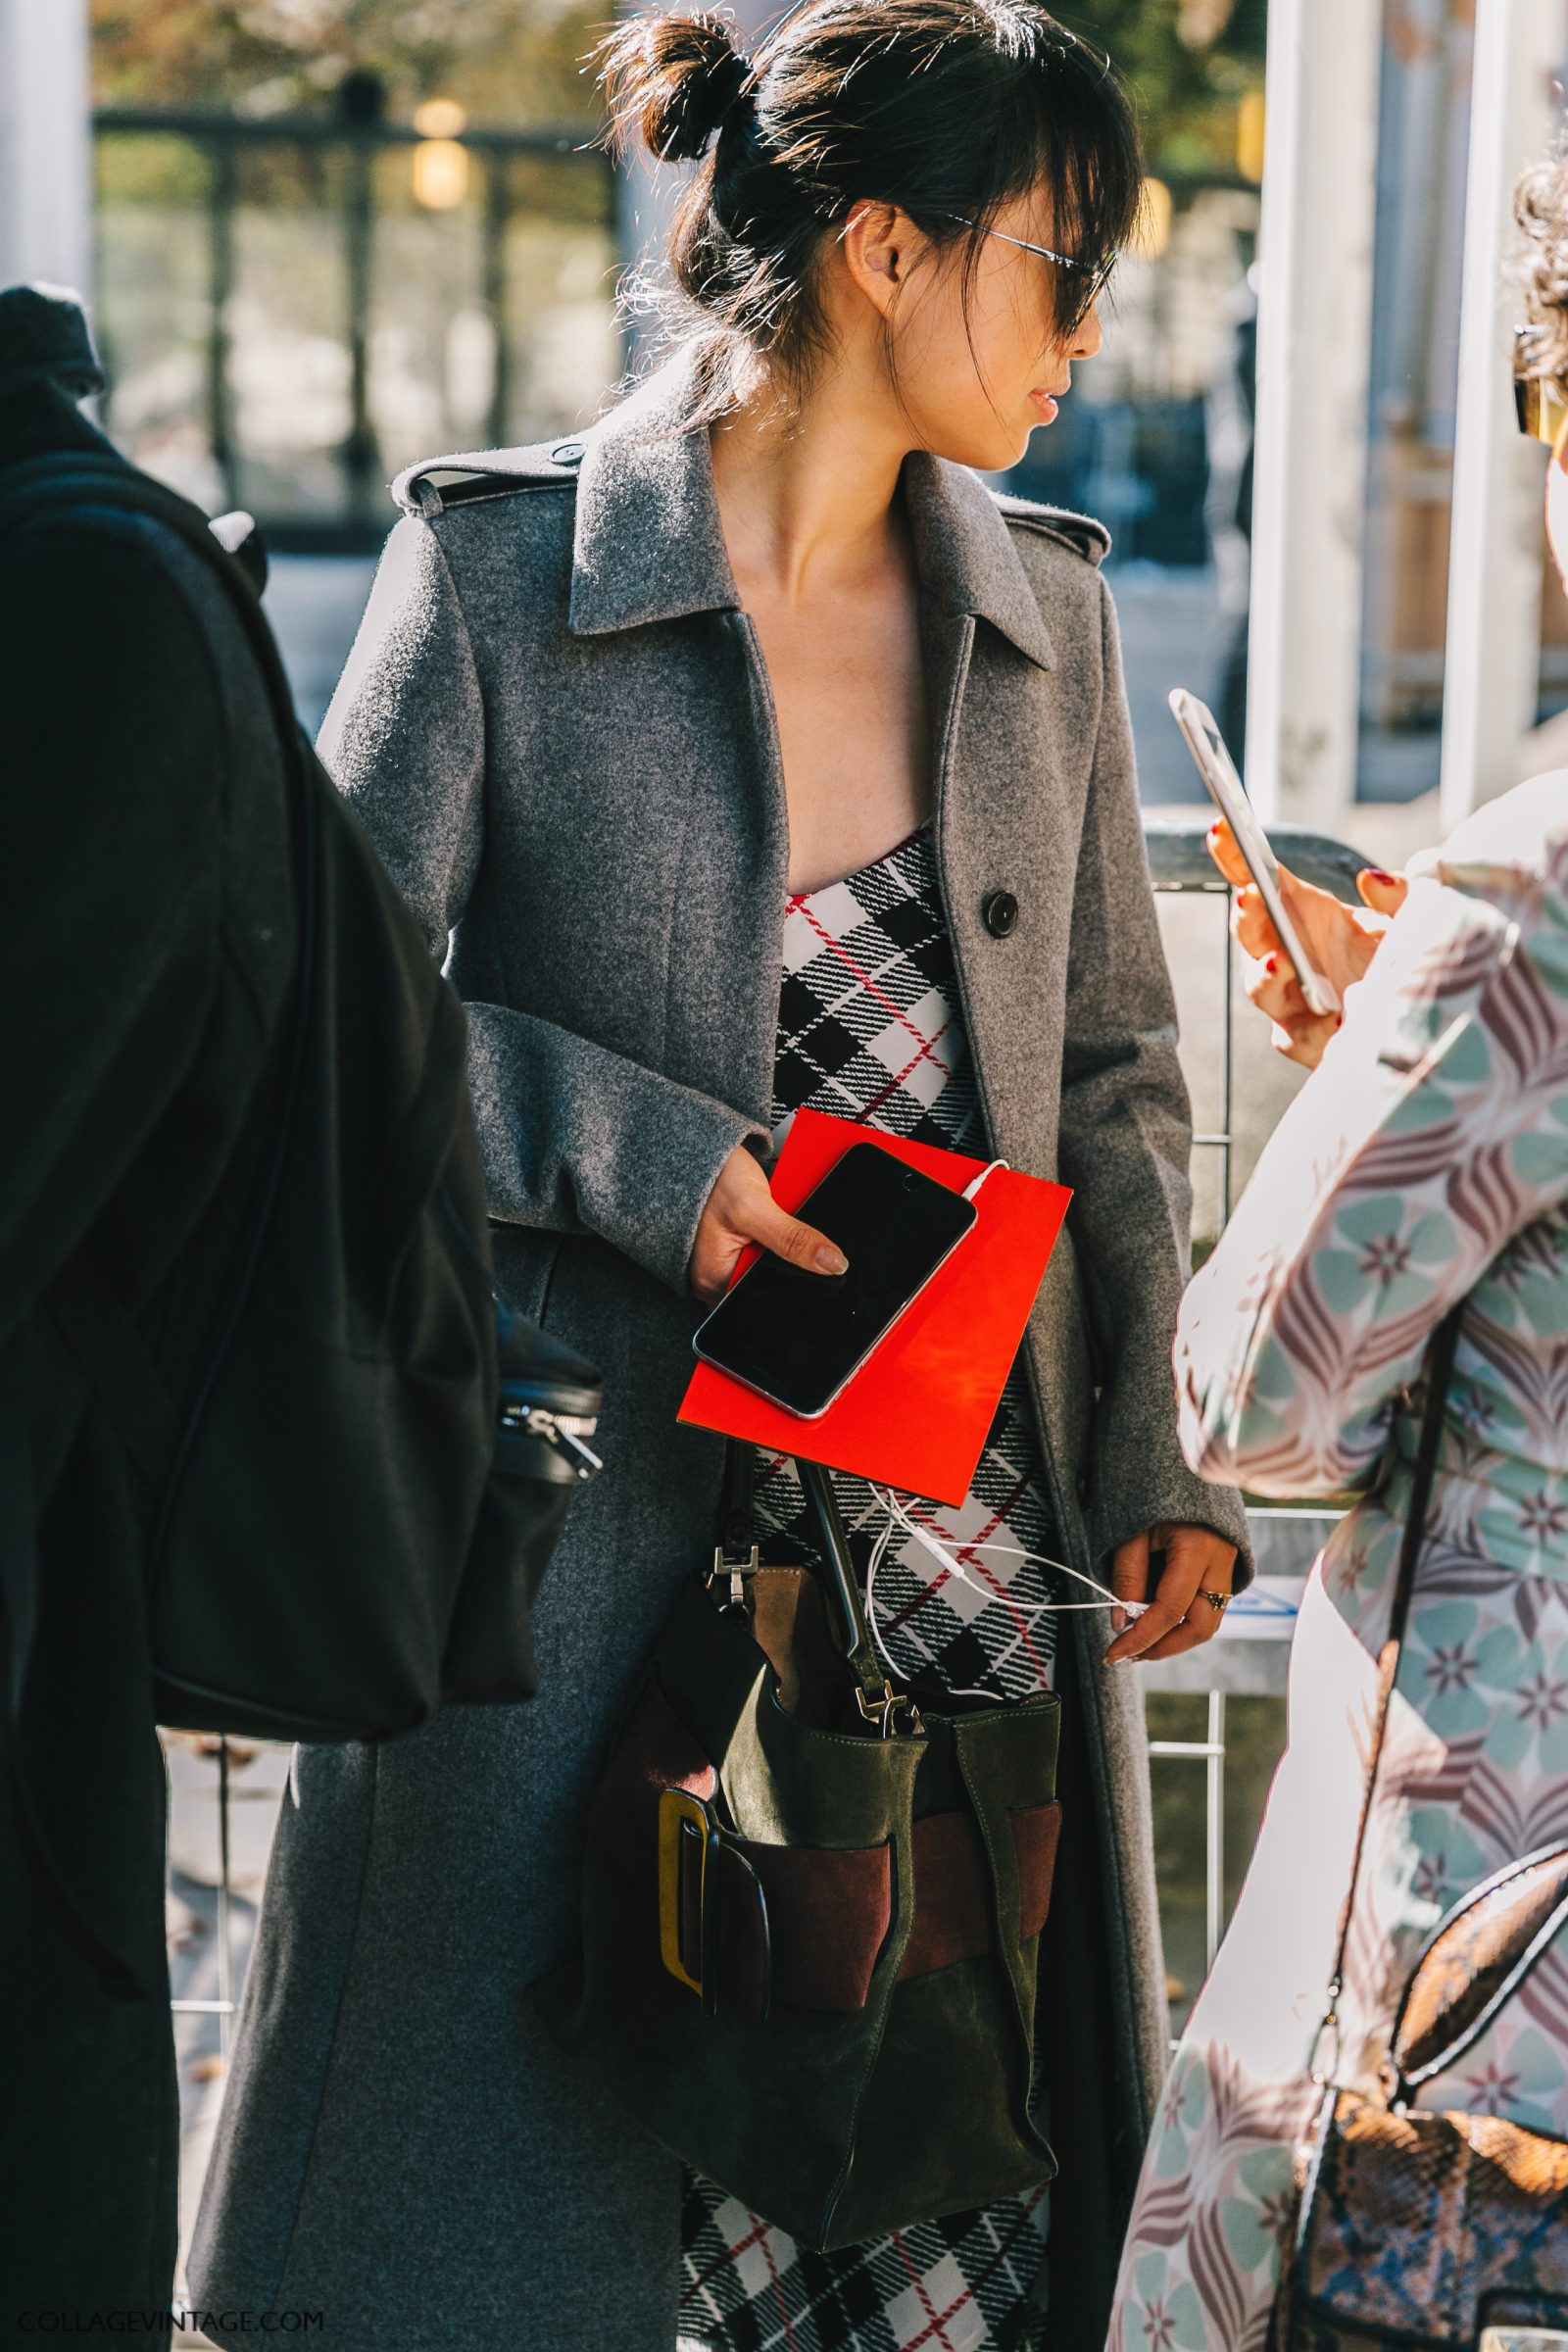 pfw-paris_fashion_week_ss17-street_style-outfit-collage_vintage-louis_vuitton-miu_miu-45